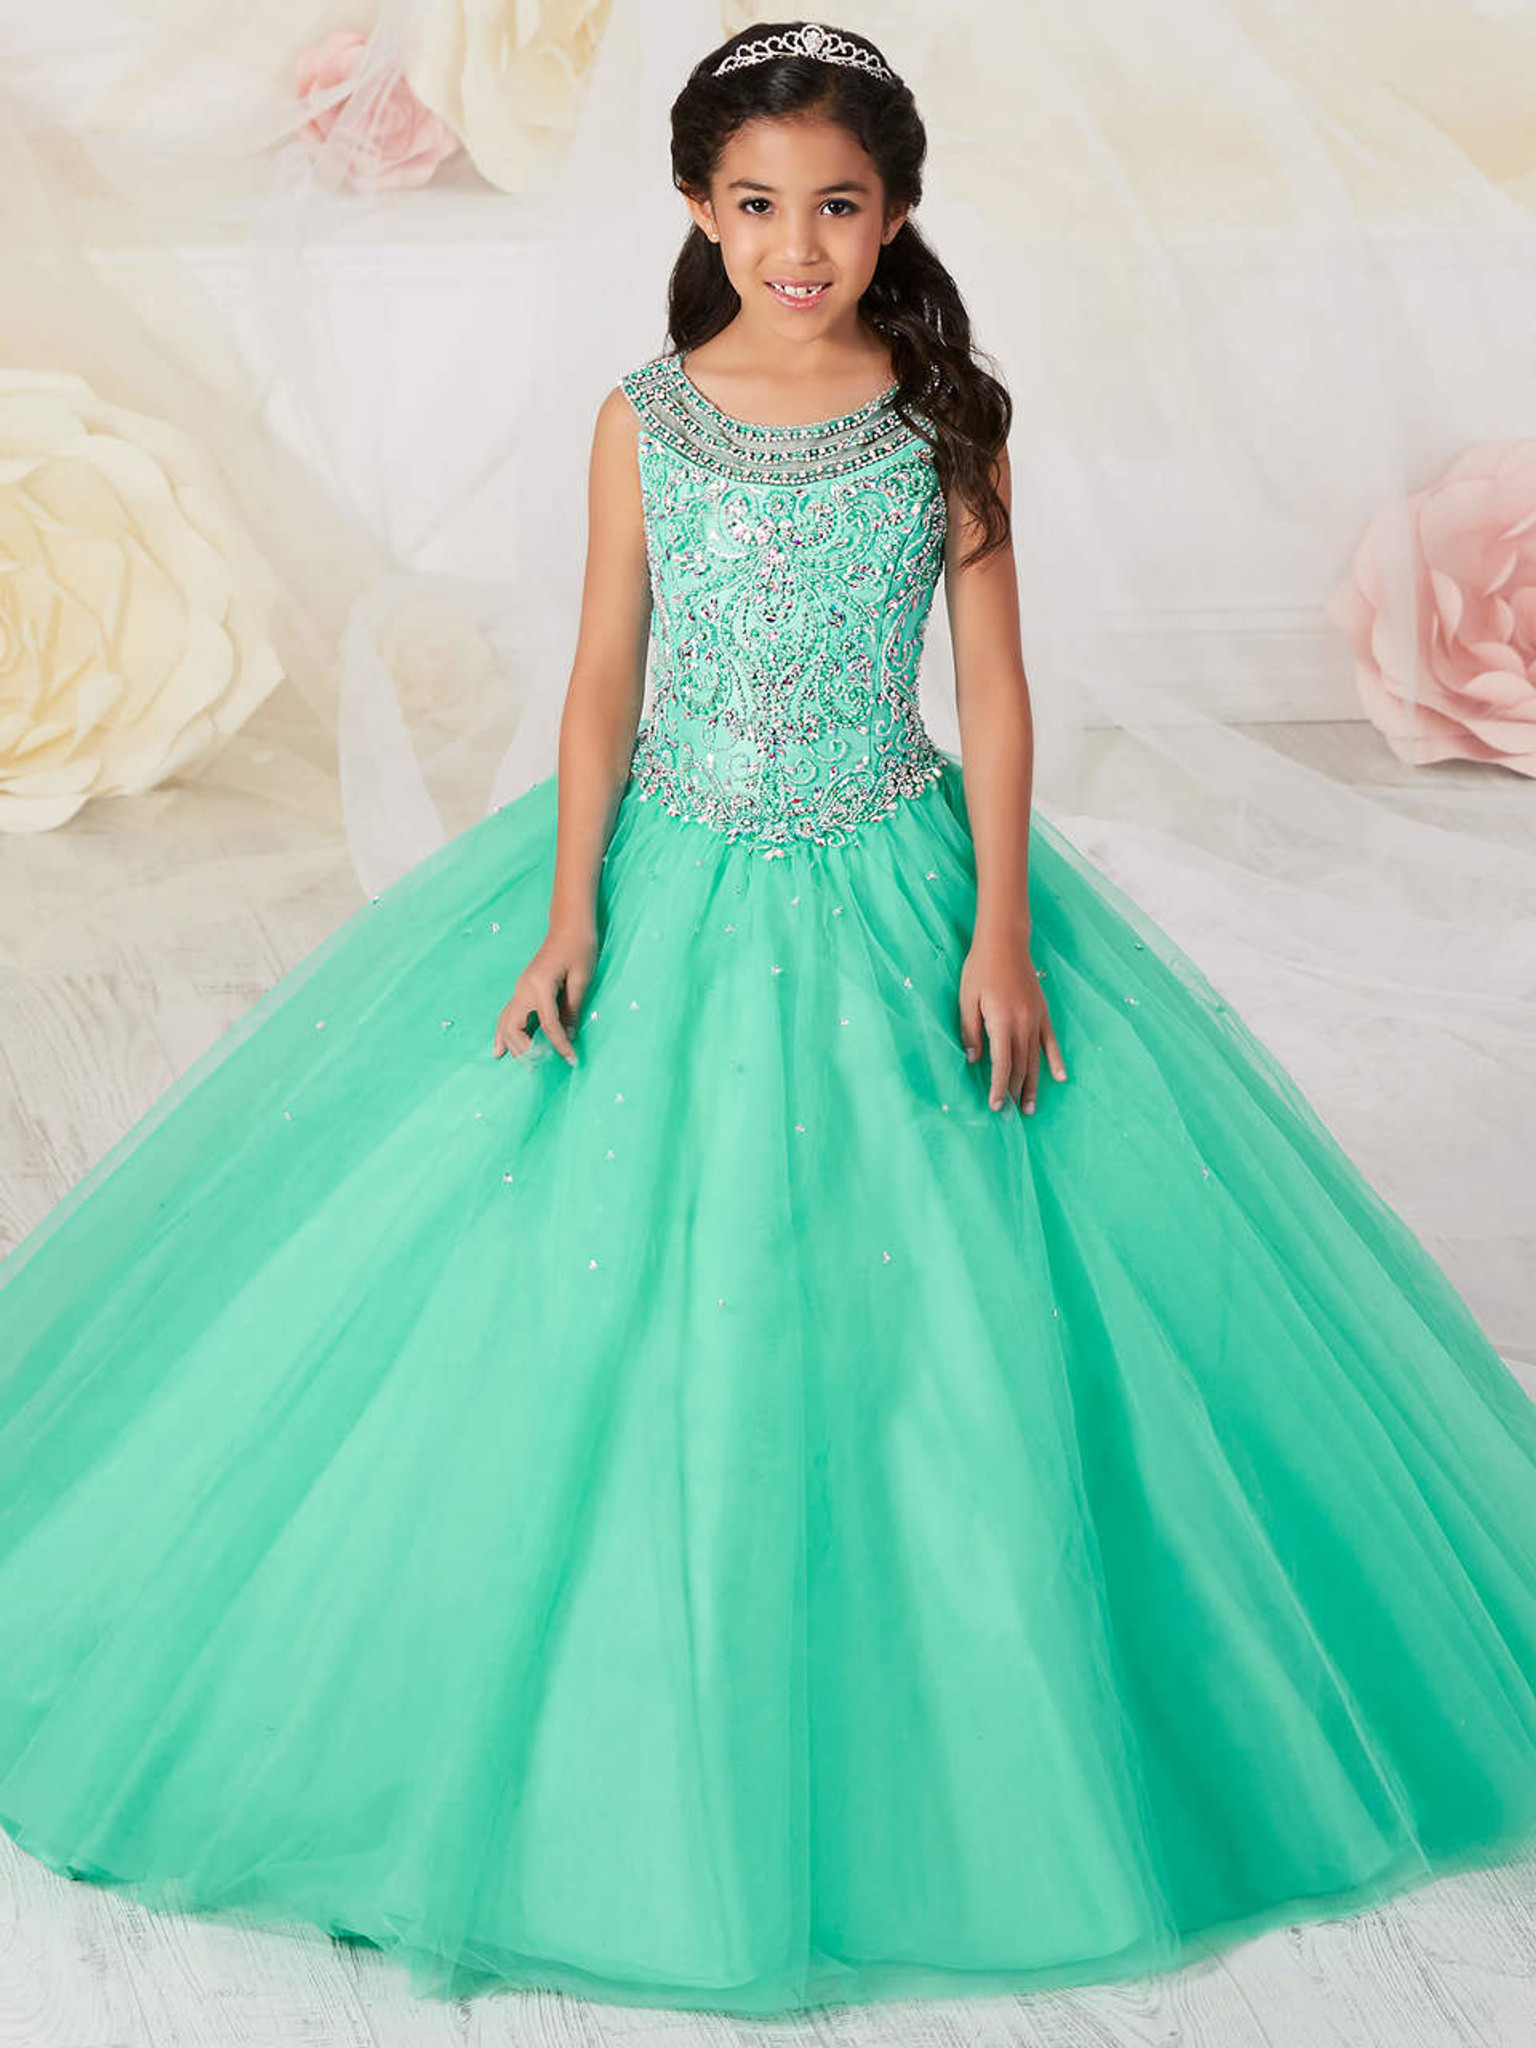 Bright aqua scoop neckline tiffany princess 13537 girls pageant dress